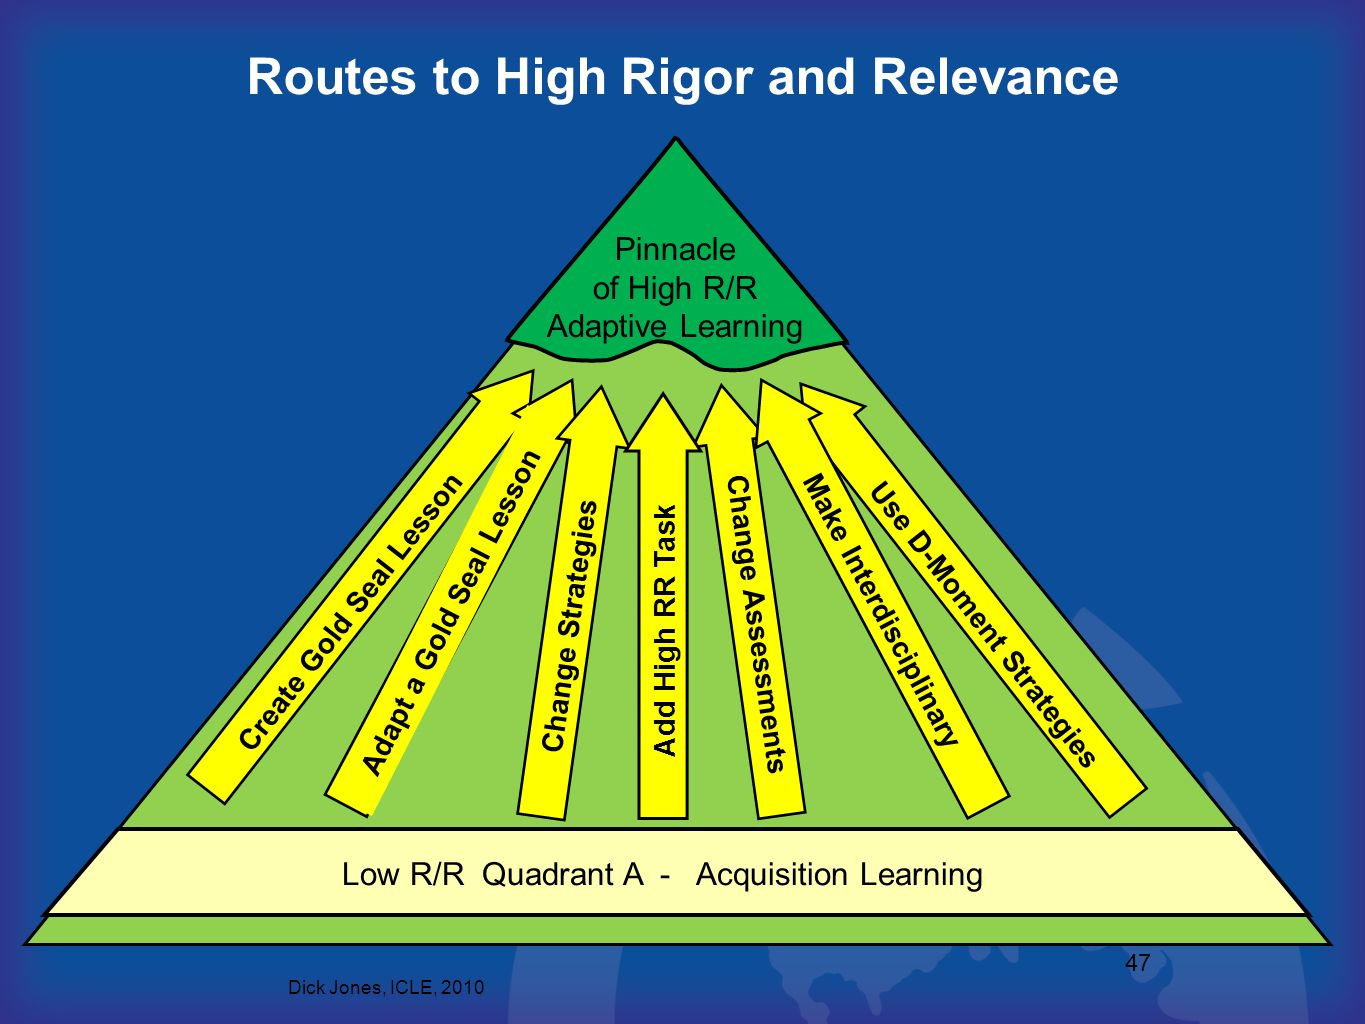 Routes to High Rigor and Relevance